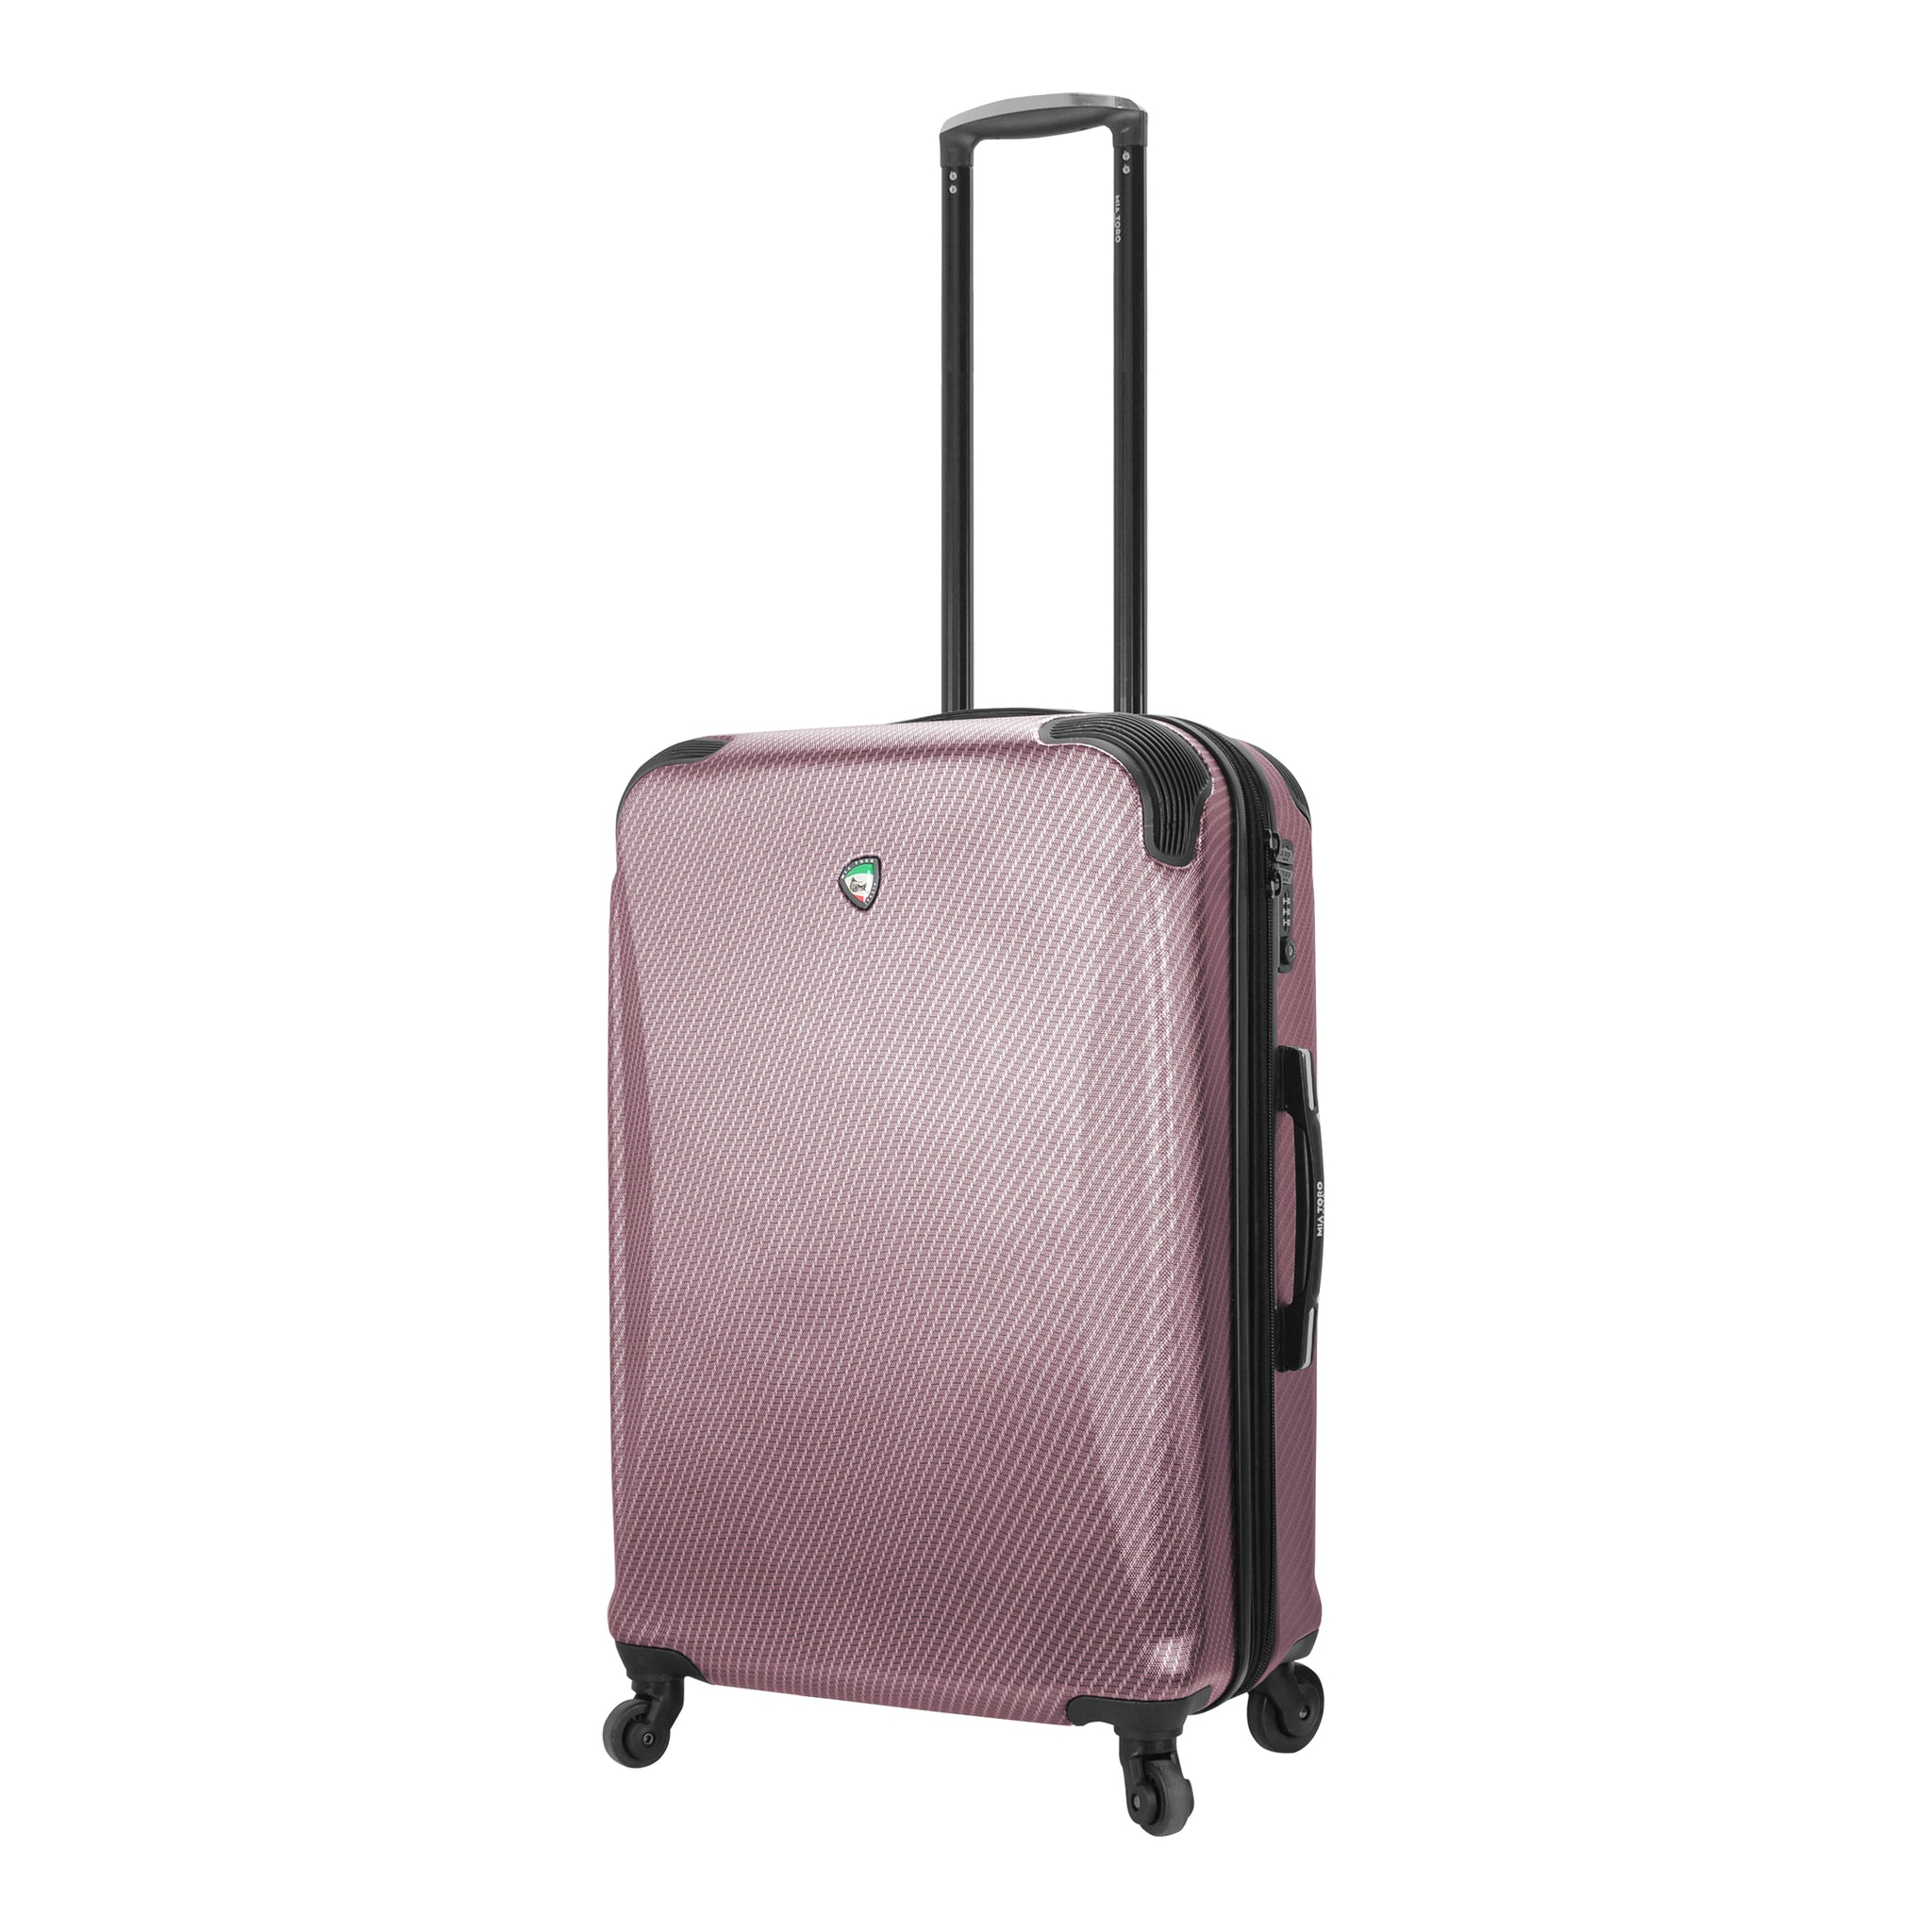 Mia Toro ITALY Gaeta Hard Side 26 Inch Spinner Luggage